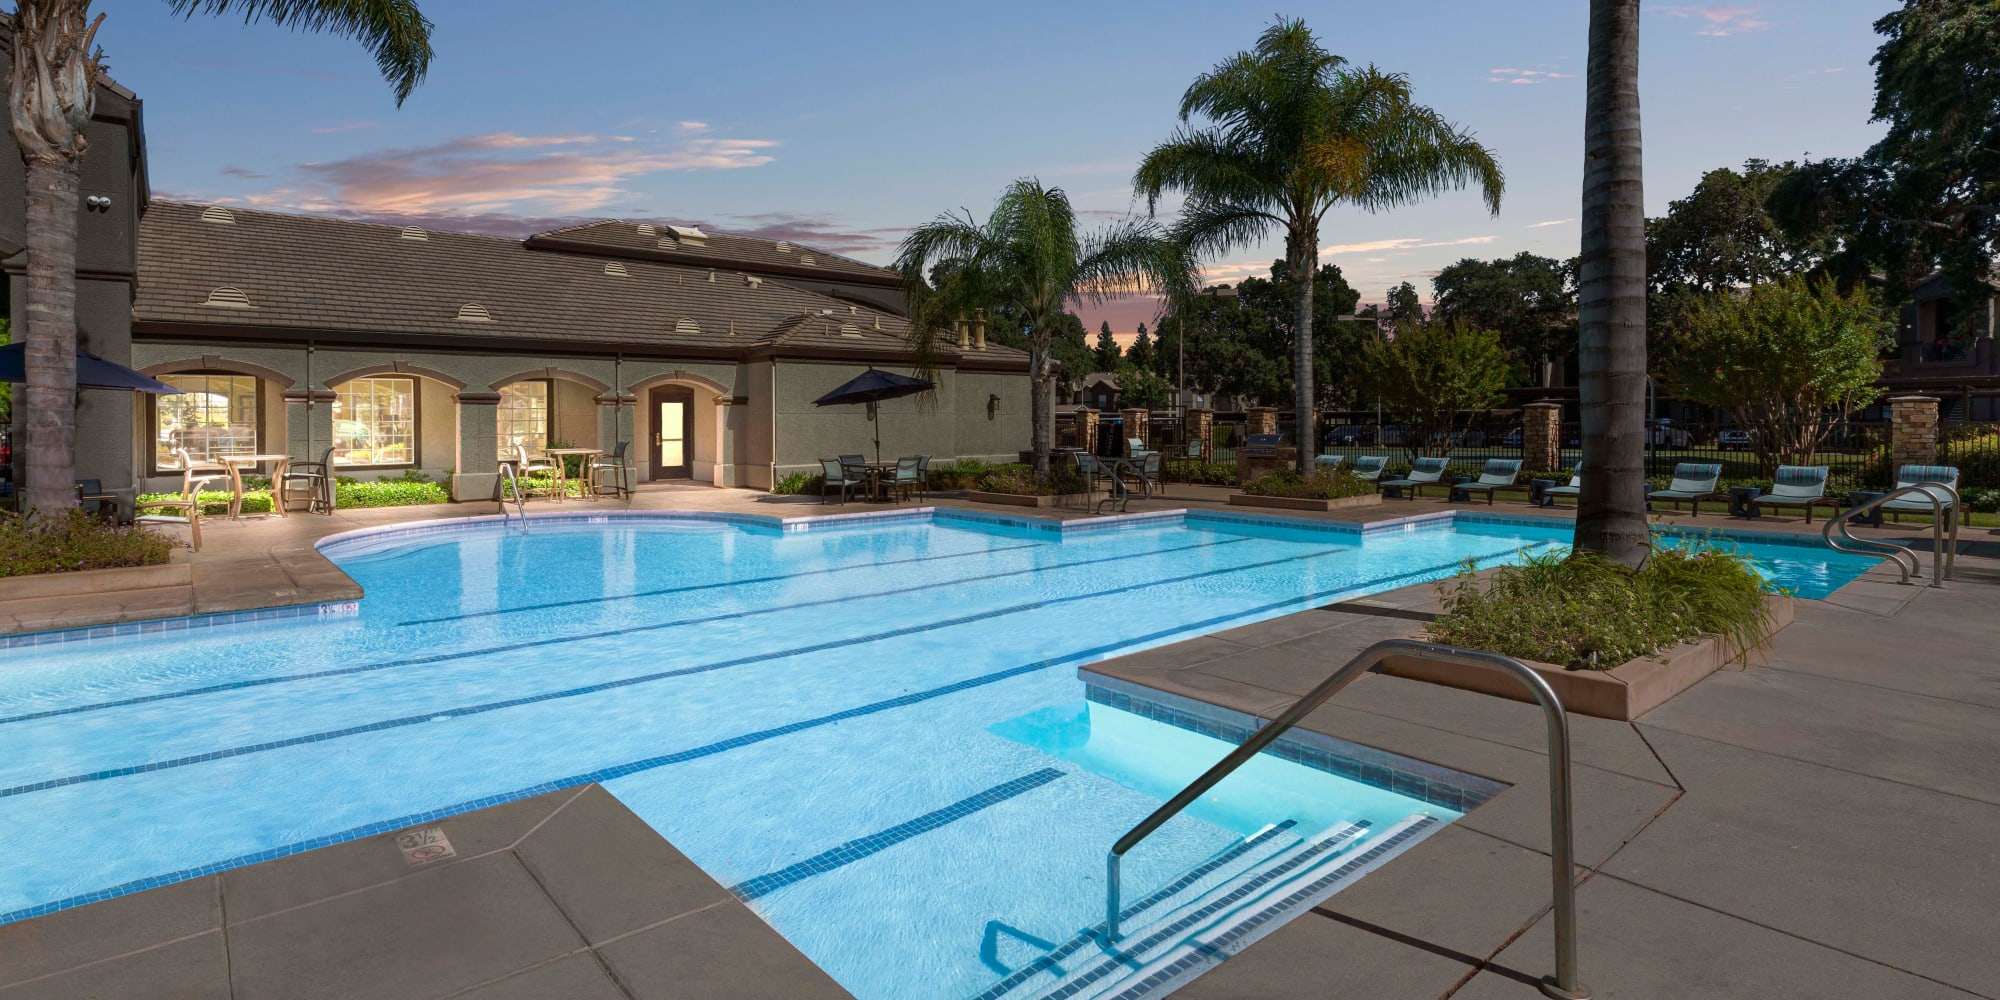 River Oaks Apartment Homes in Vacaville, California